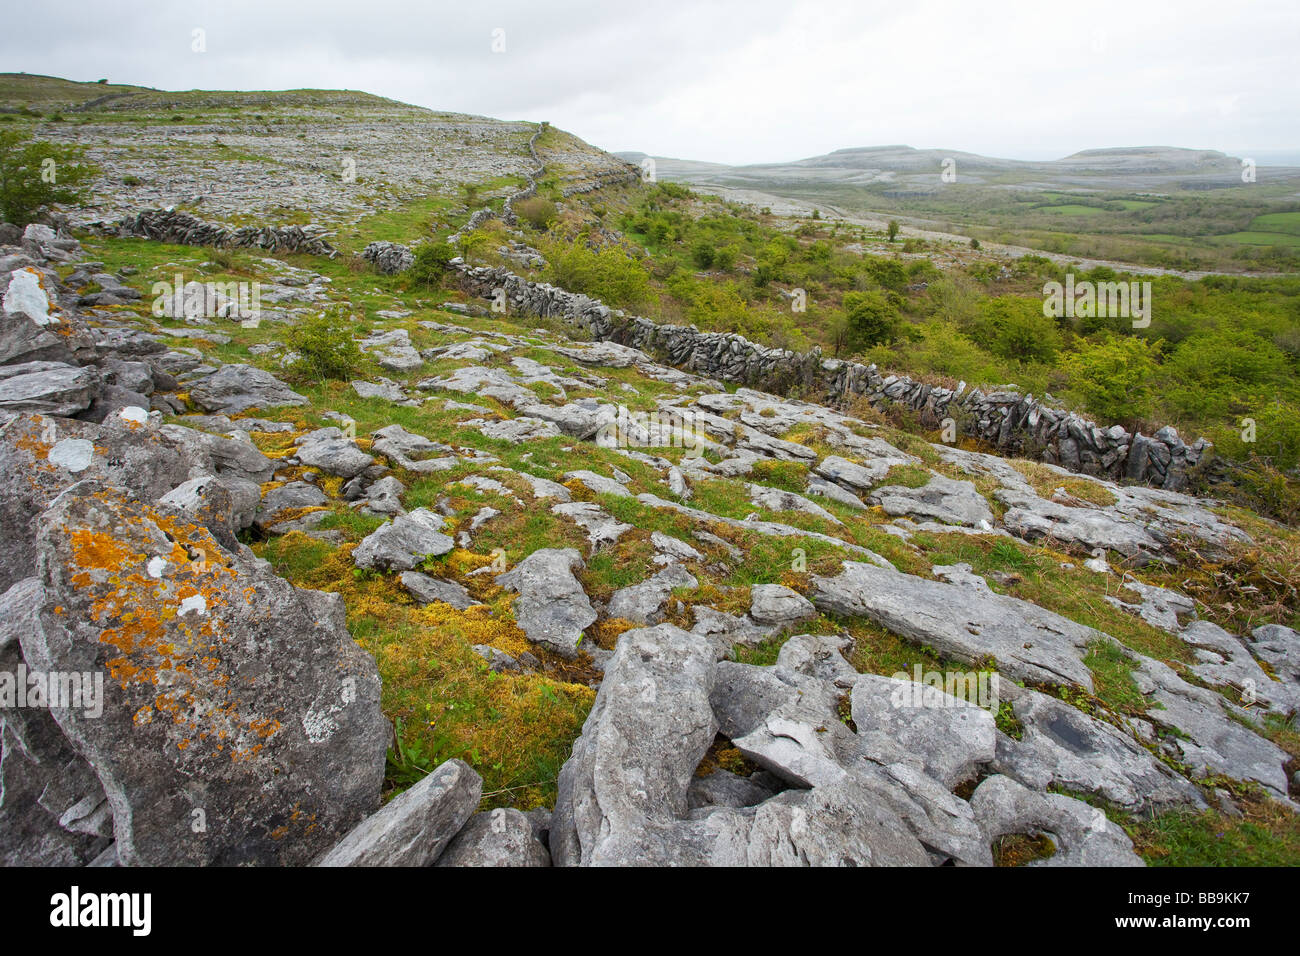 Limestone pavements and stone walls of Fahee North looking Turloughmore Burren County Clare Ireland Eire Irish Republic - Stock Image